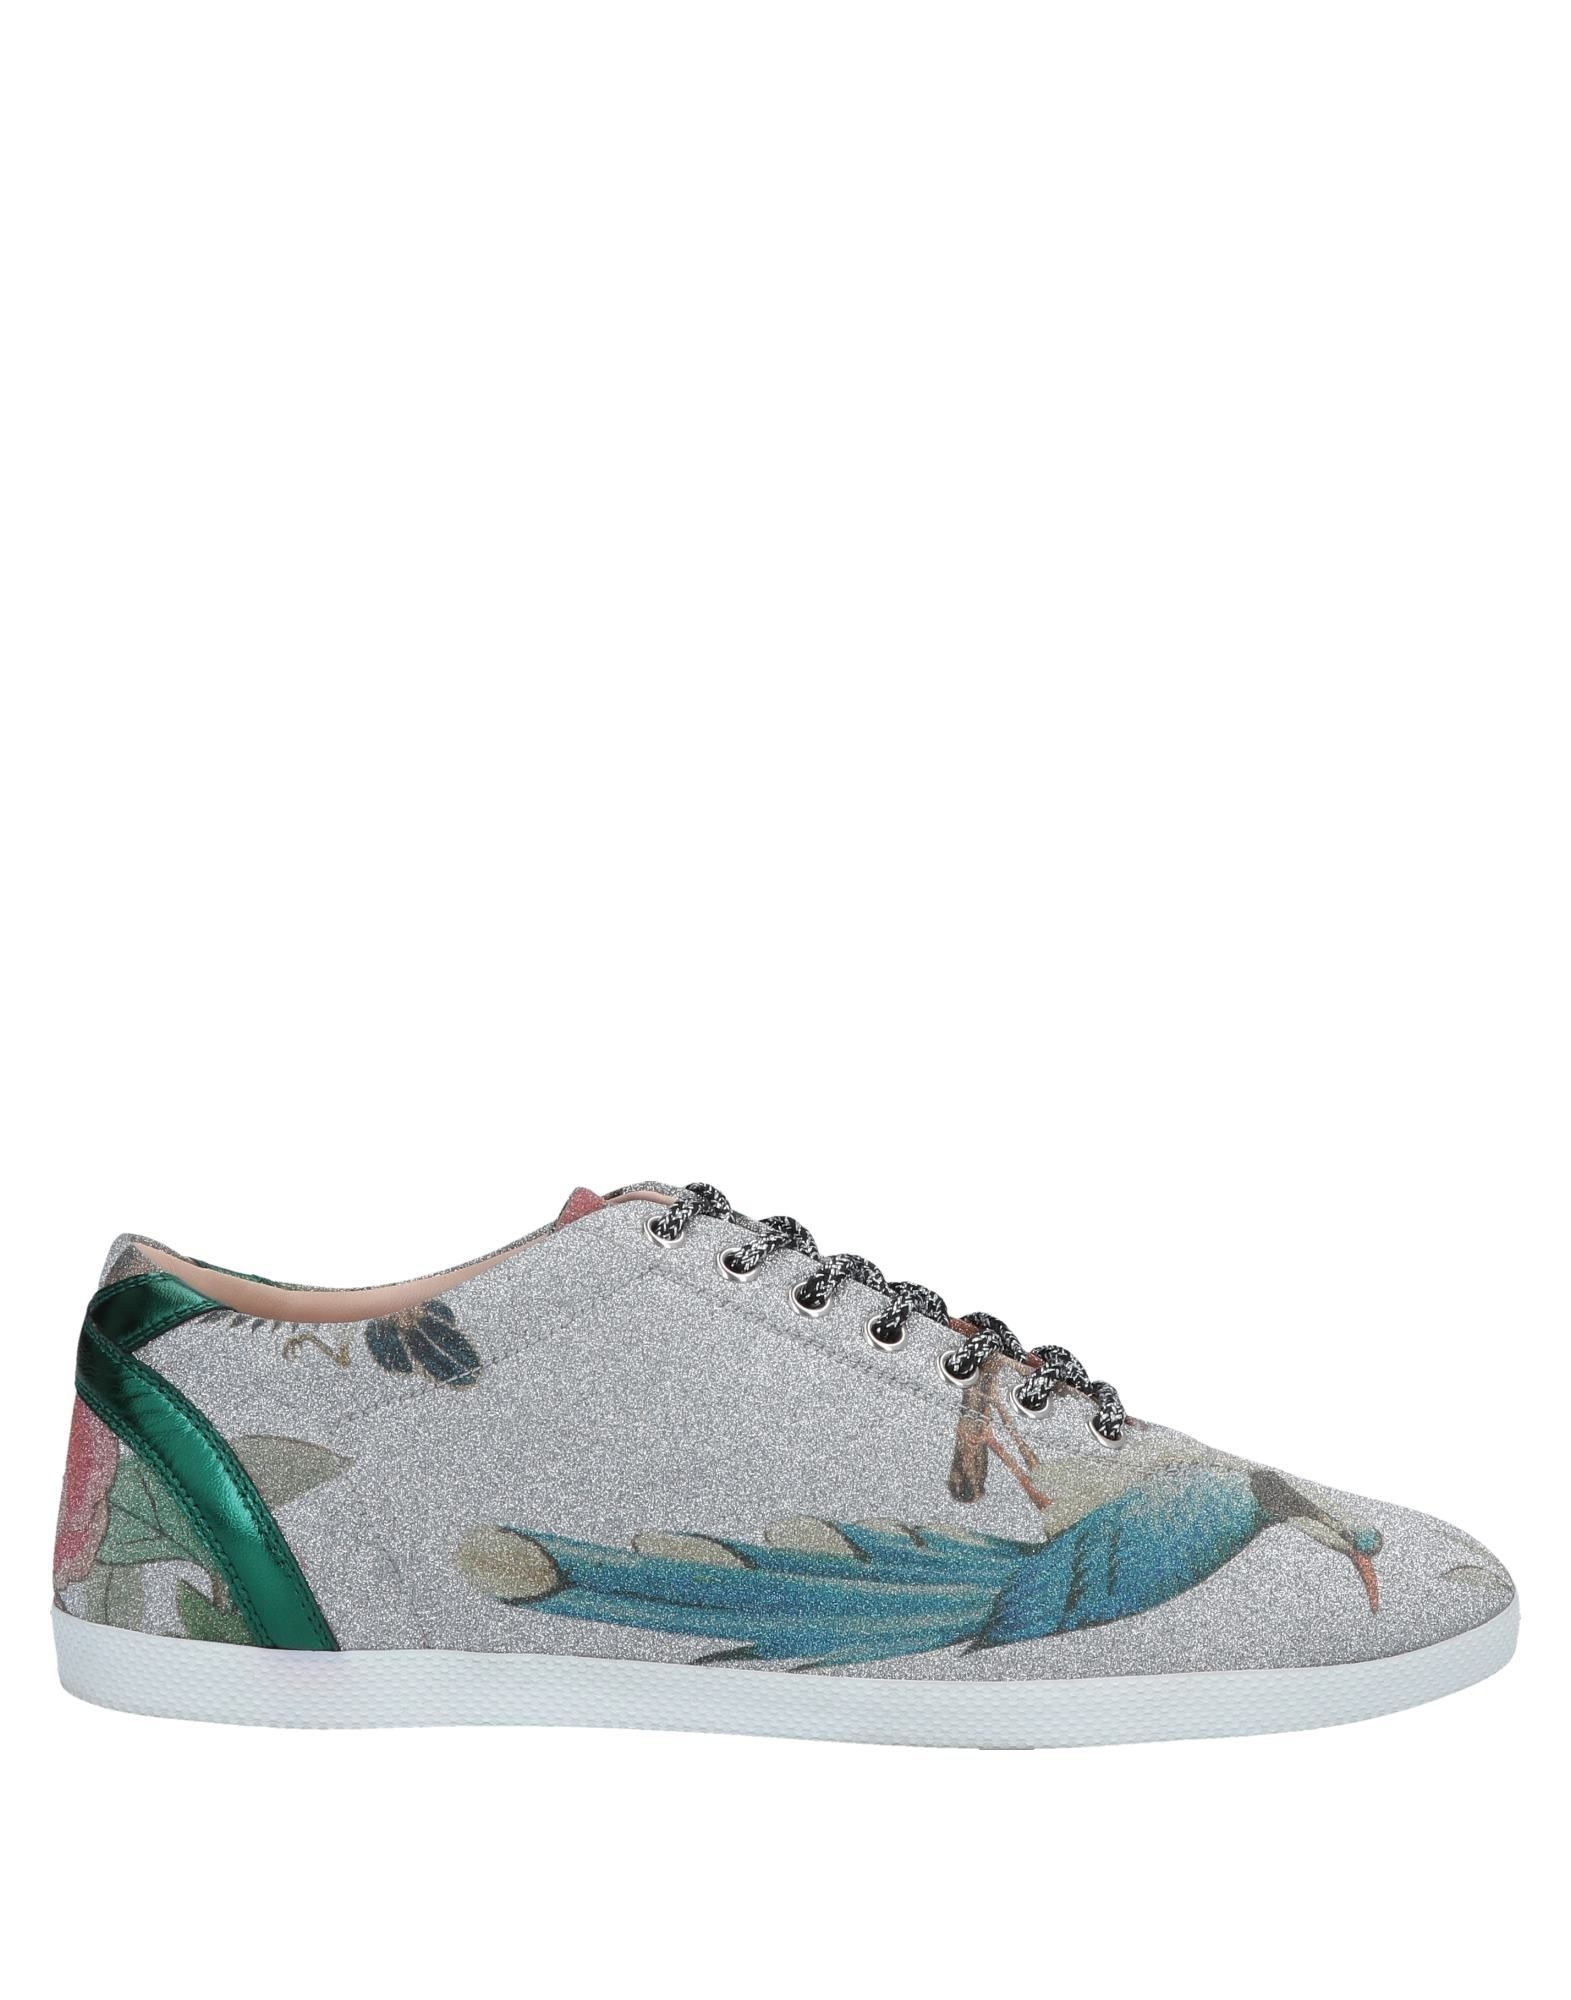 e222c62b9 Gucci Sneakers - Women Gucci Sneakers online on YOOX United States ...